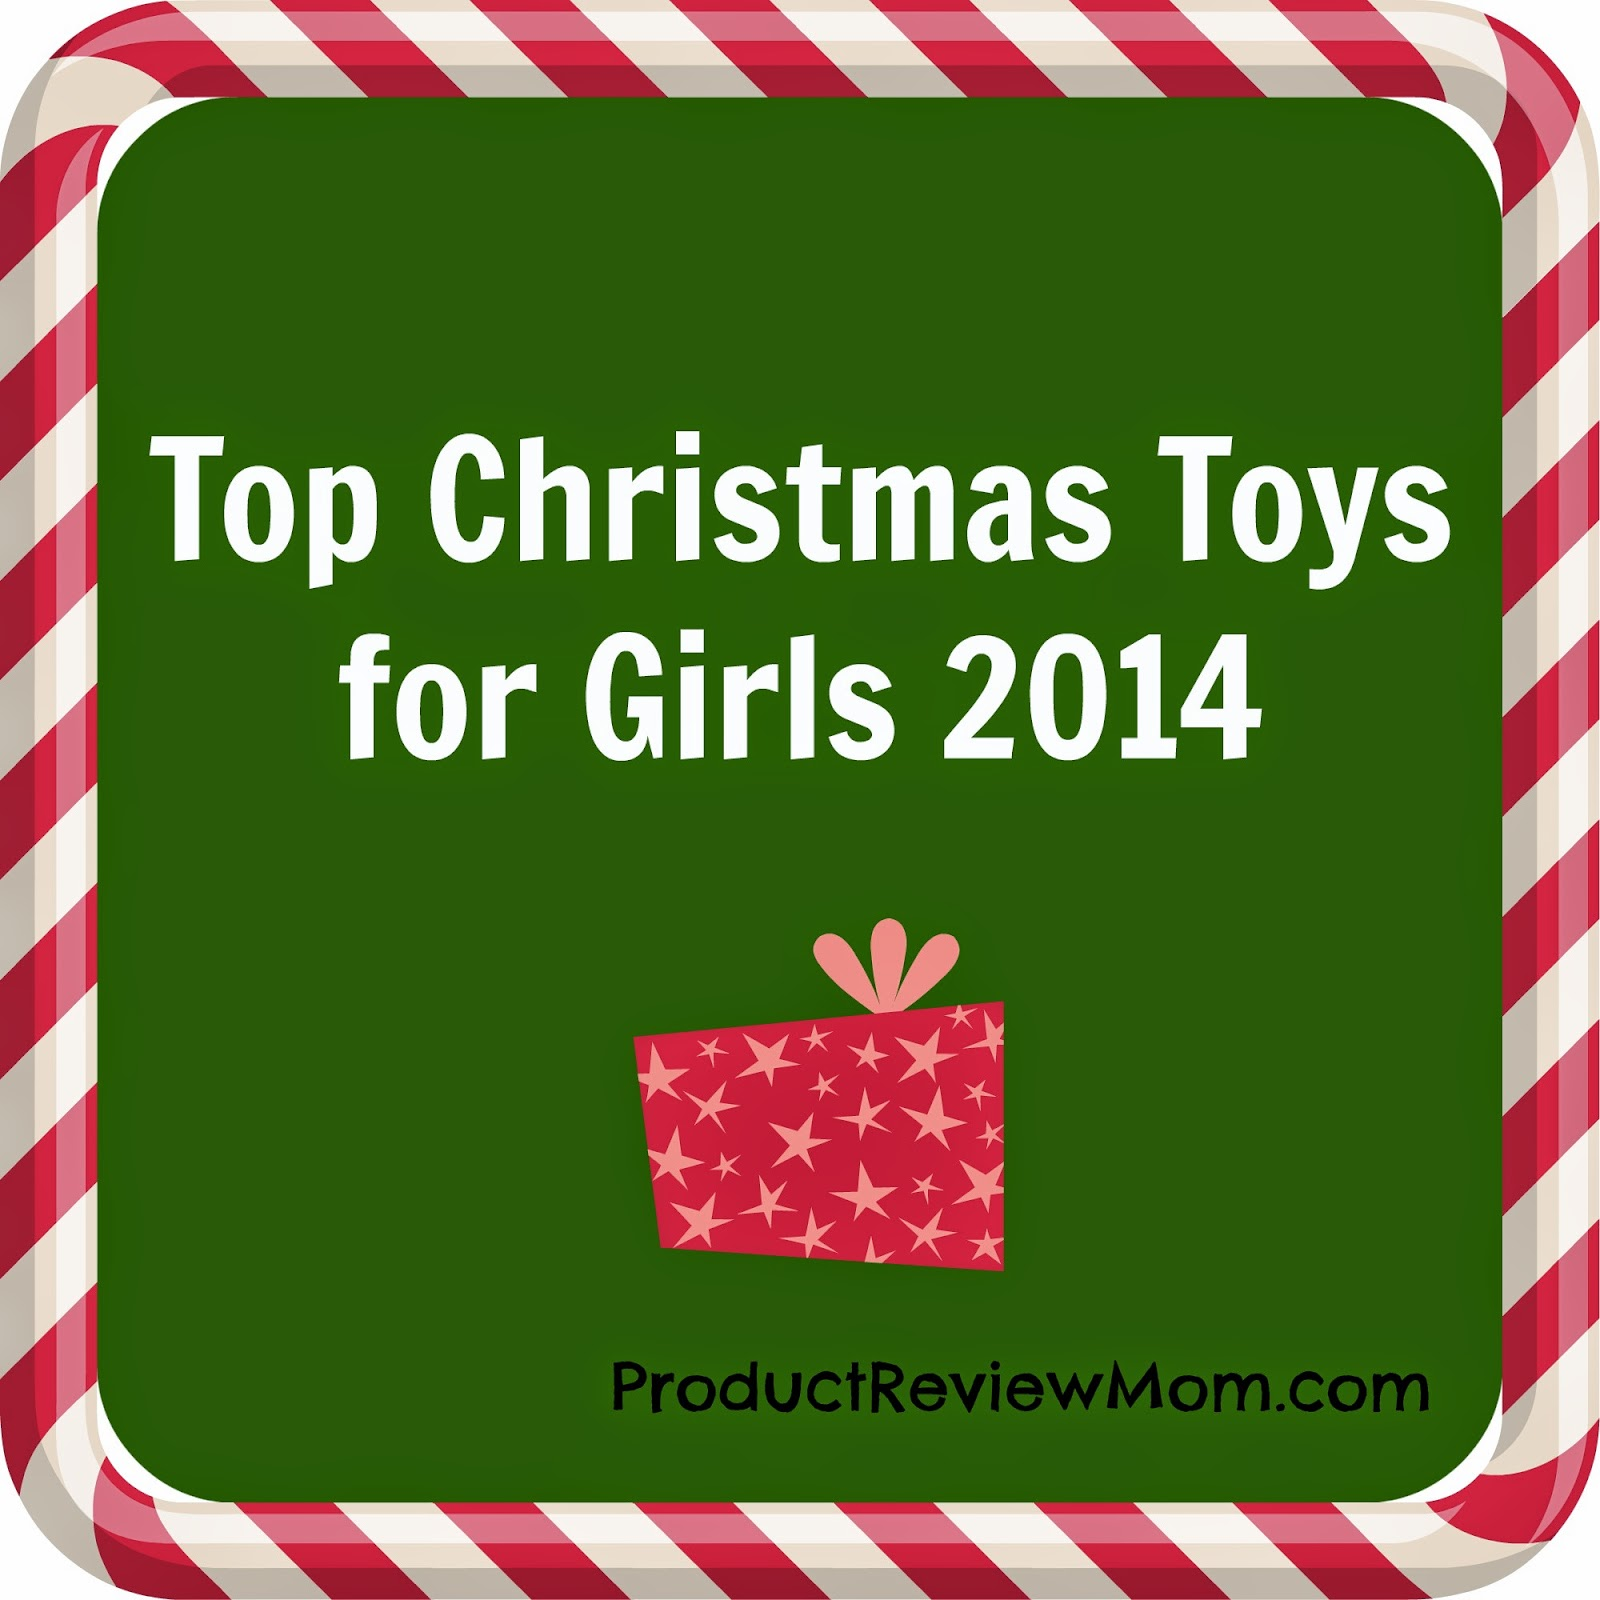 Christmas Toys 2014 : Top christmas toys for girls holidaygiftguide